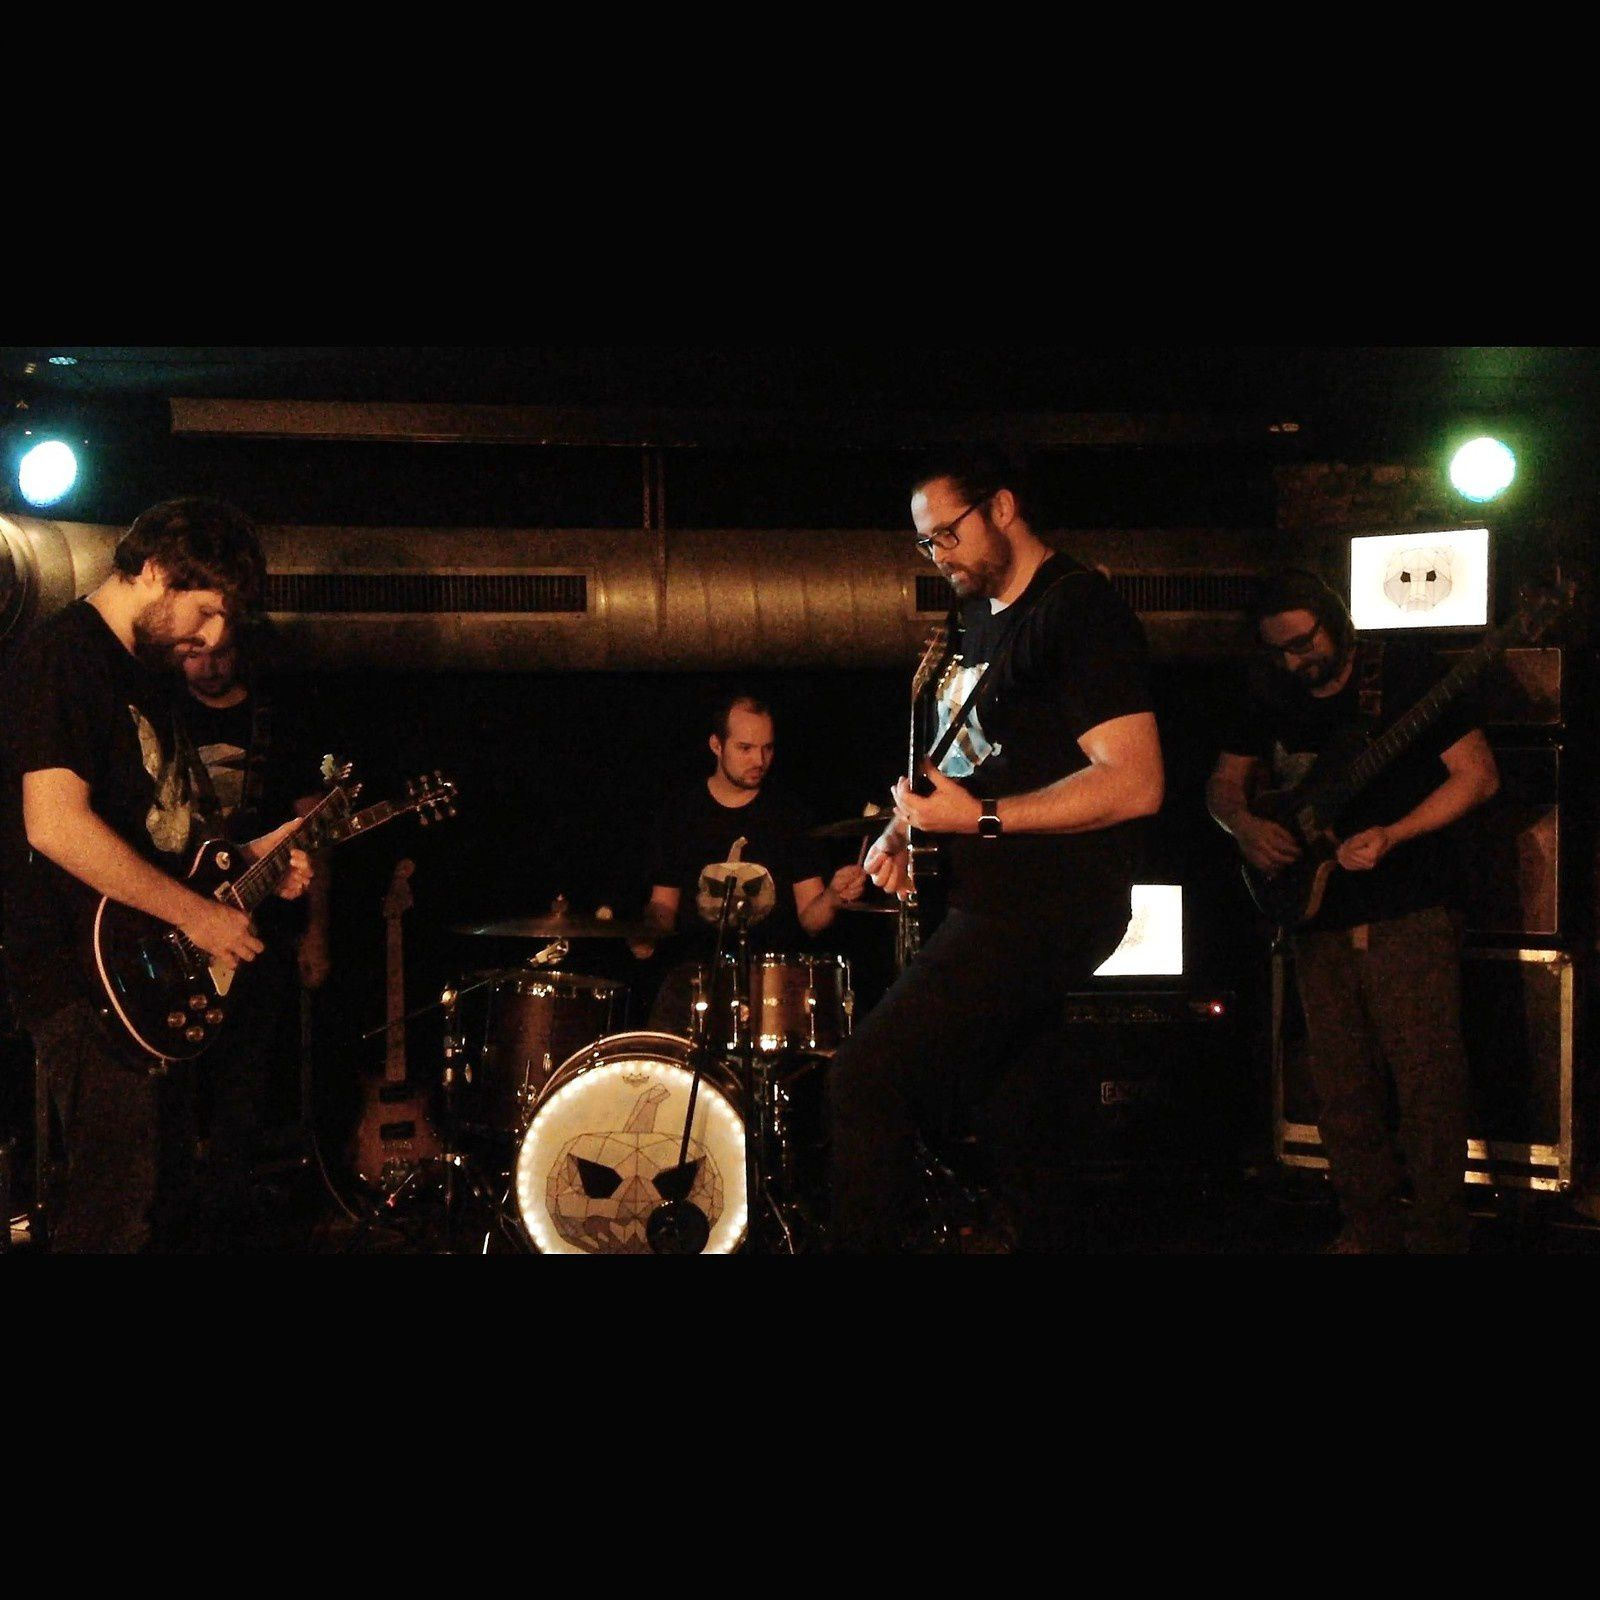 ▶ Photo / Videos - Celestial Wolves @ Rock Classic - 20/12/2019